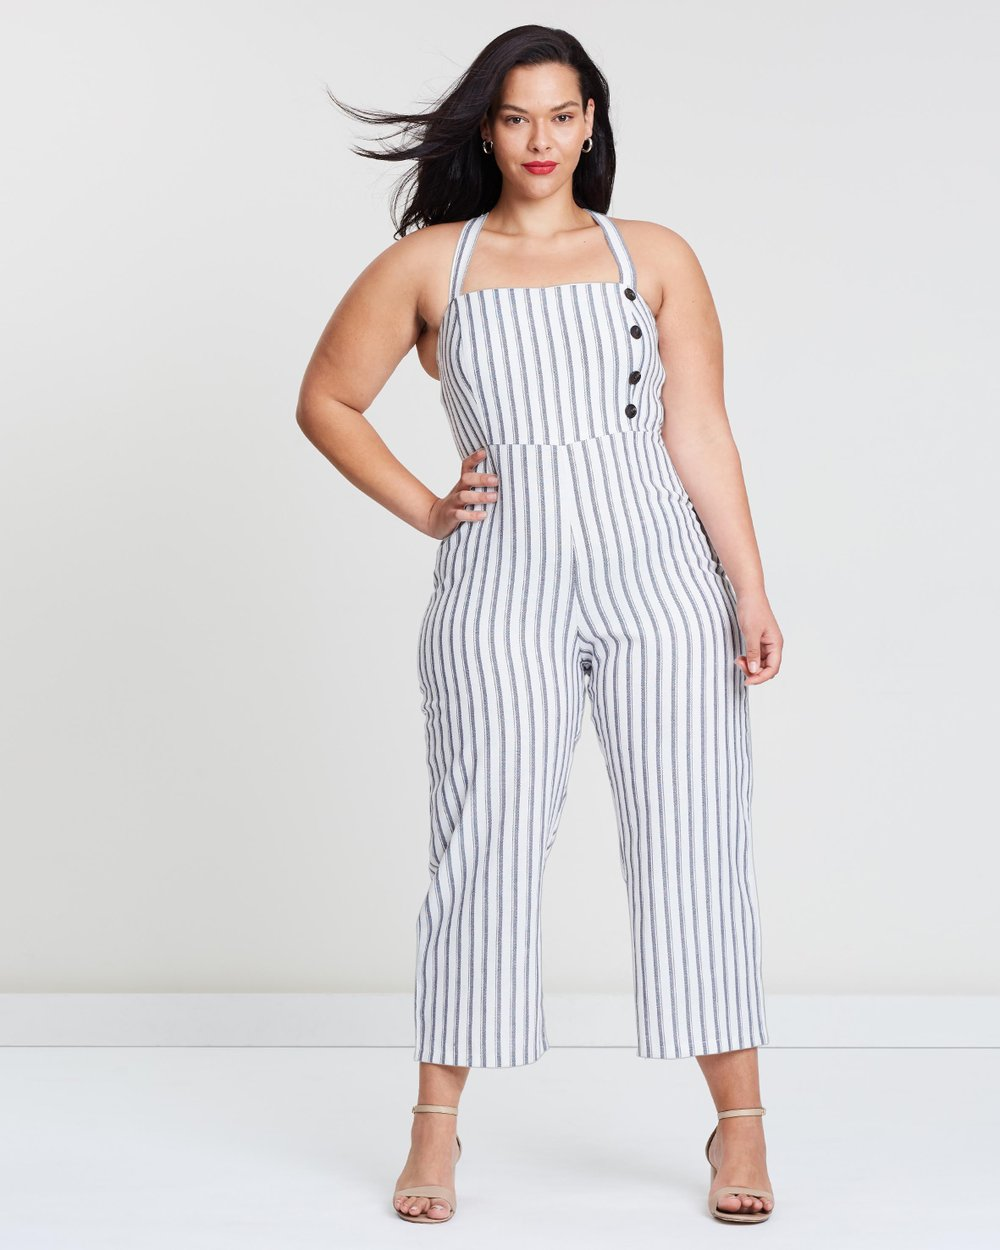 e6e997897433 ICONIC EXCLUSIVE - Belize Straight Leg Jumpsuit by Atmos Here Curvy Online